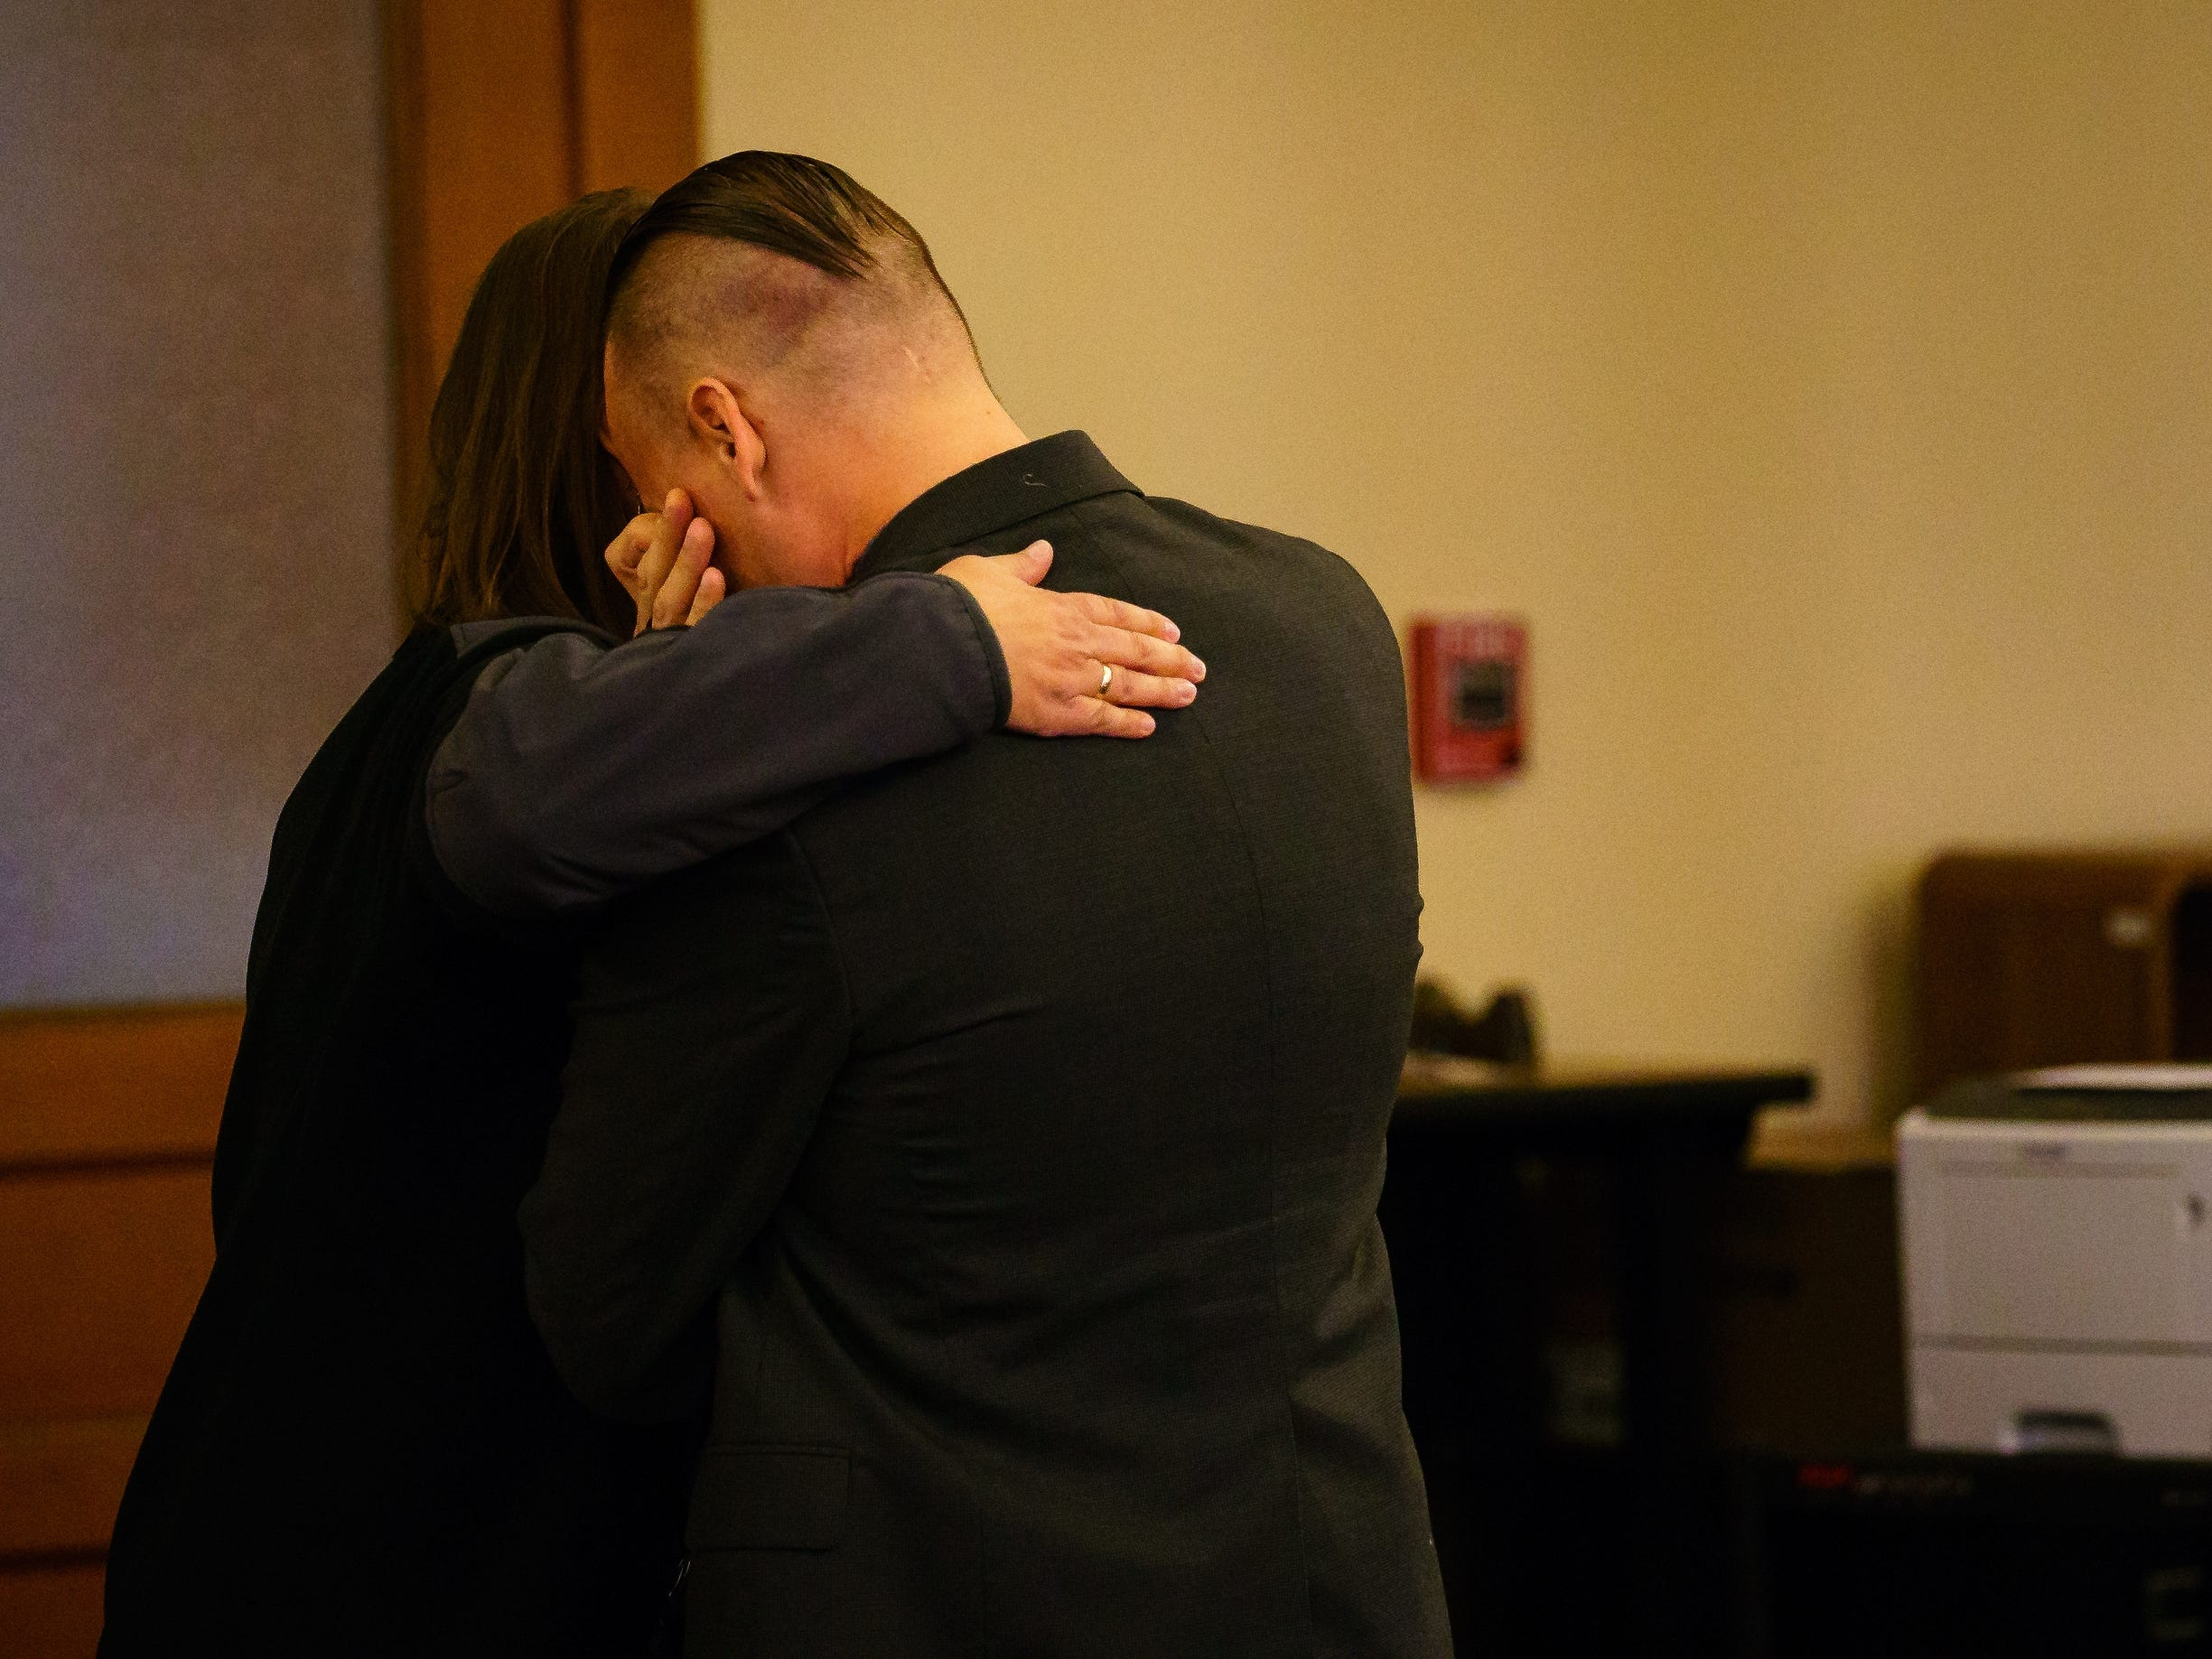 Troy Griffin is consoled after a Dallas County jury found him not guilty in a criminal marital rape case against him at the Dallas County Courthouse on Thursday, Oct. 25, 2018, in Adel. Griffin's ex-wife Gina Battani accused him of raping her multiple times after they were married in April of 2016, but a Dallas County jury found him not guilty on all counts.